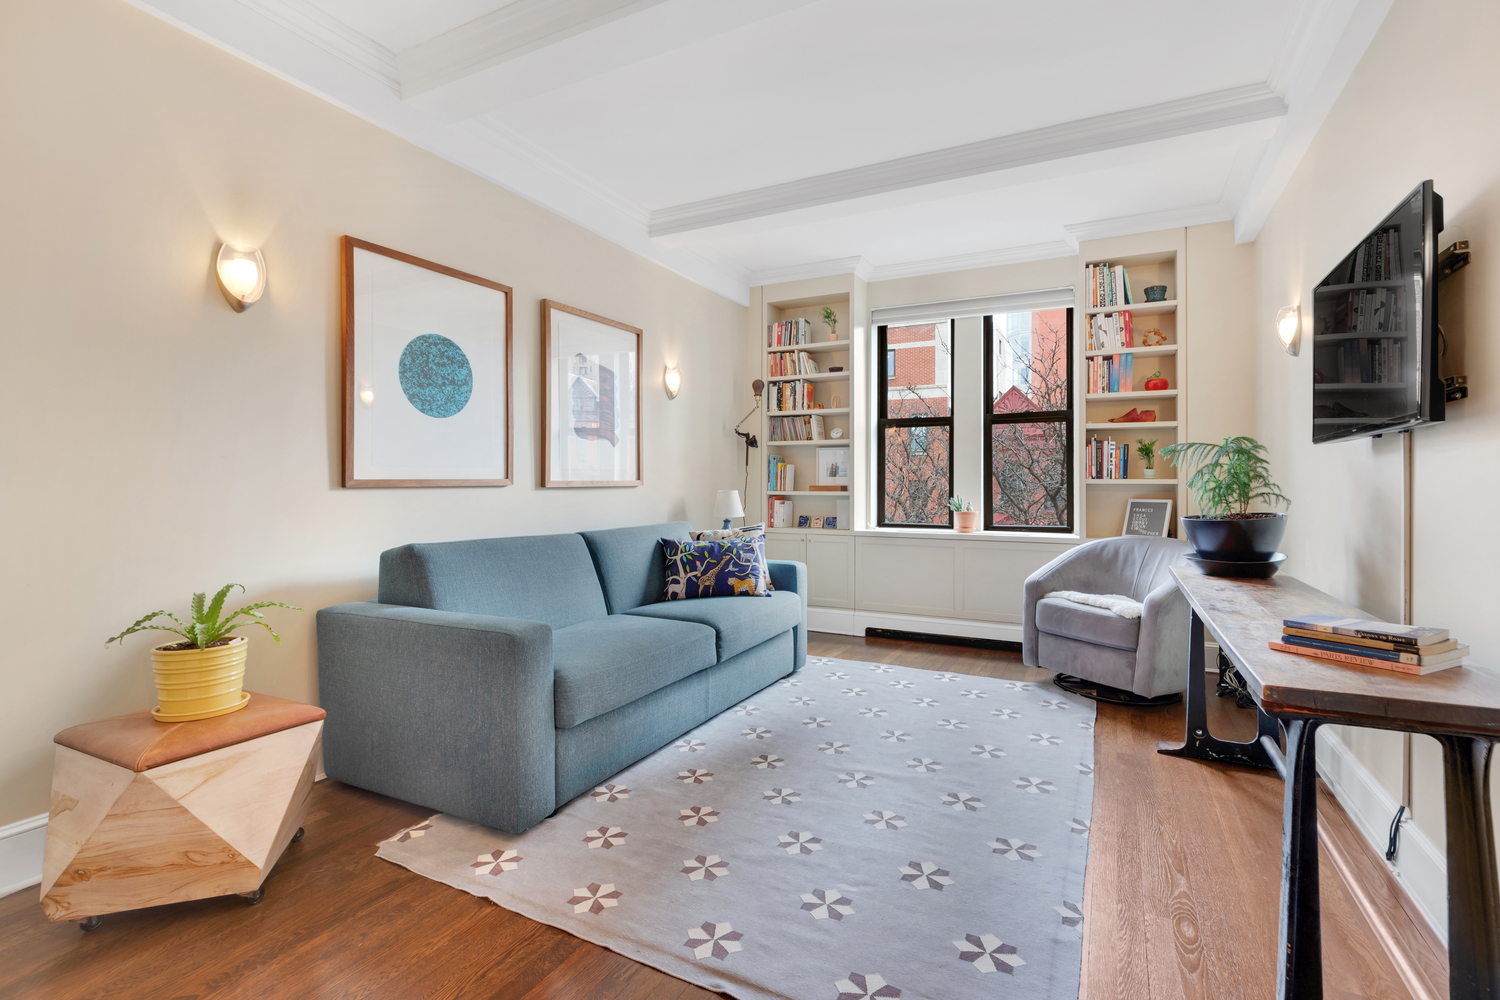 A living area with hardwood floors, two windows, a blue couch, and a rug.